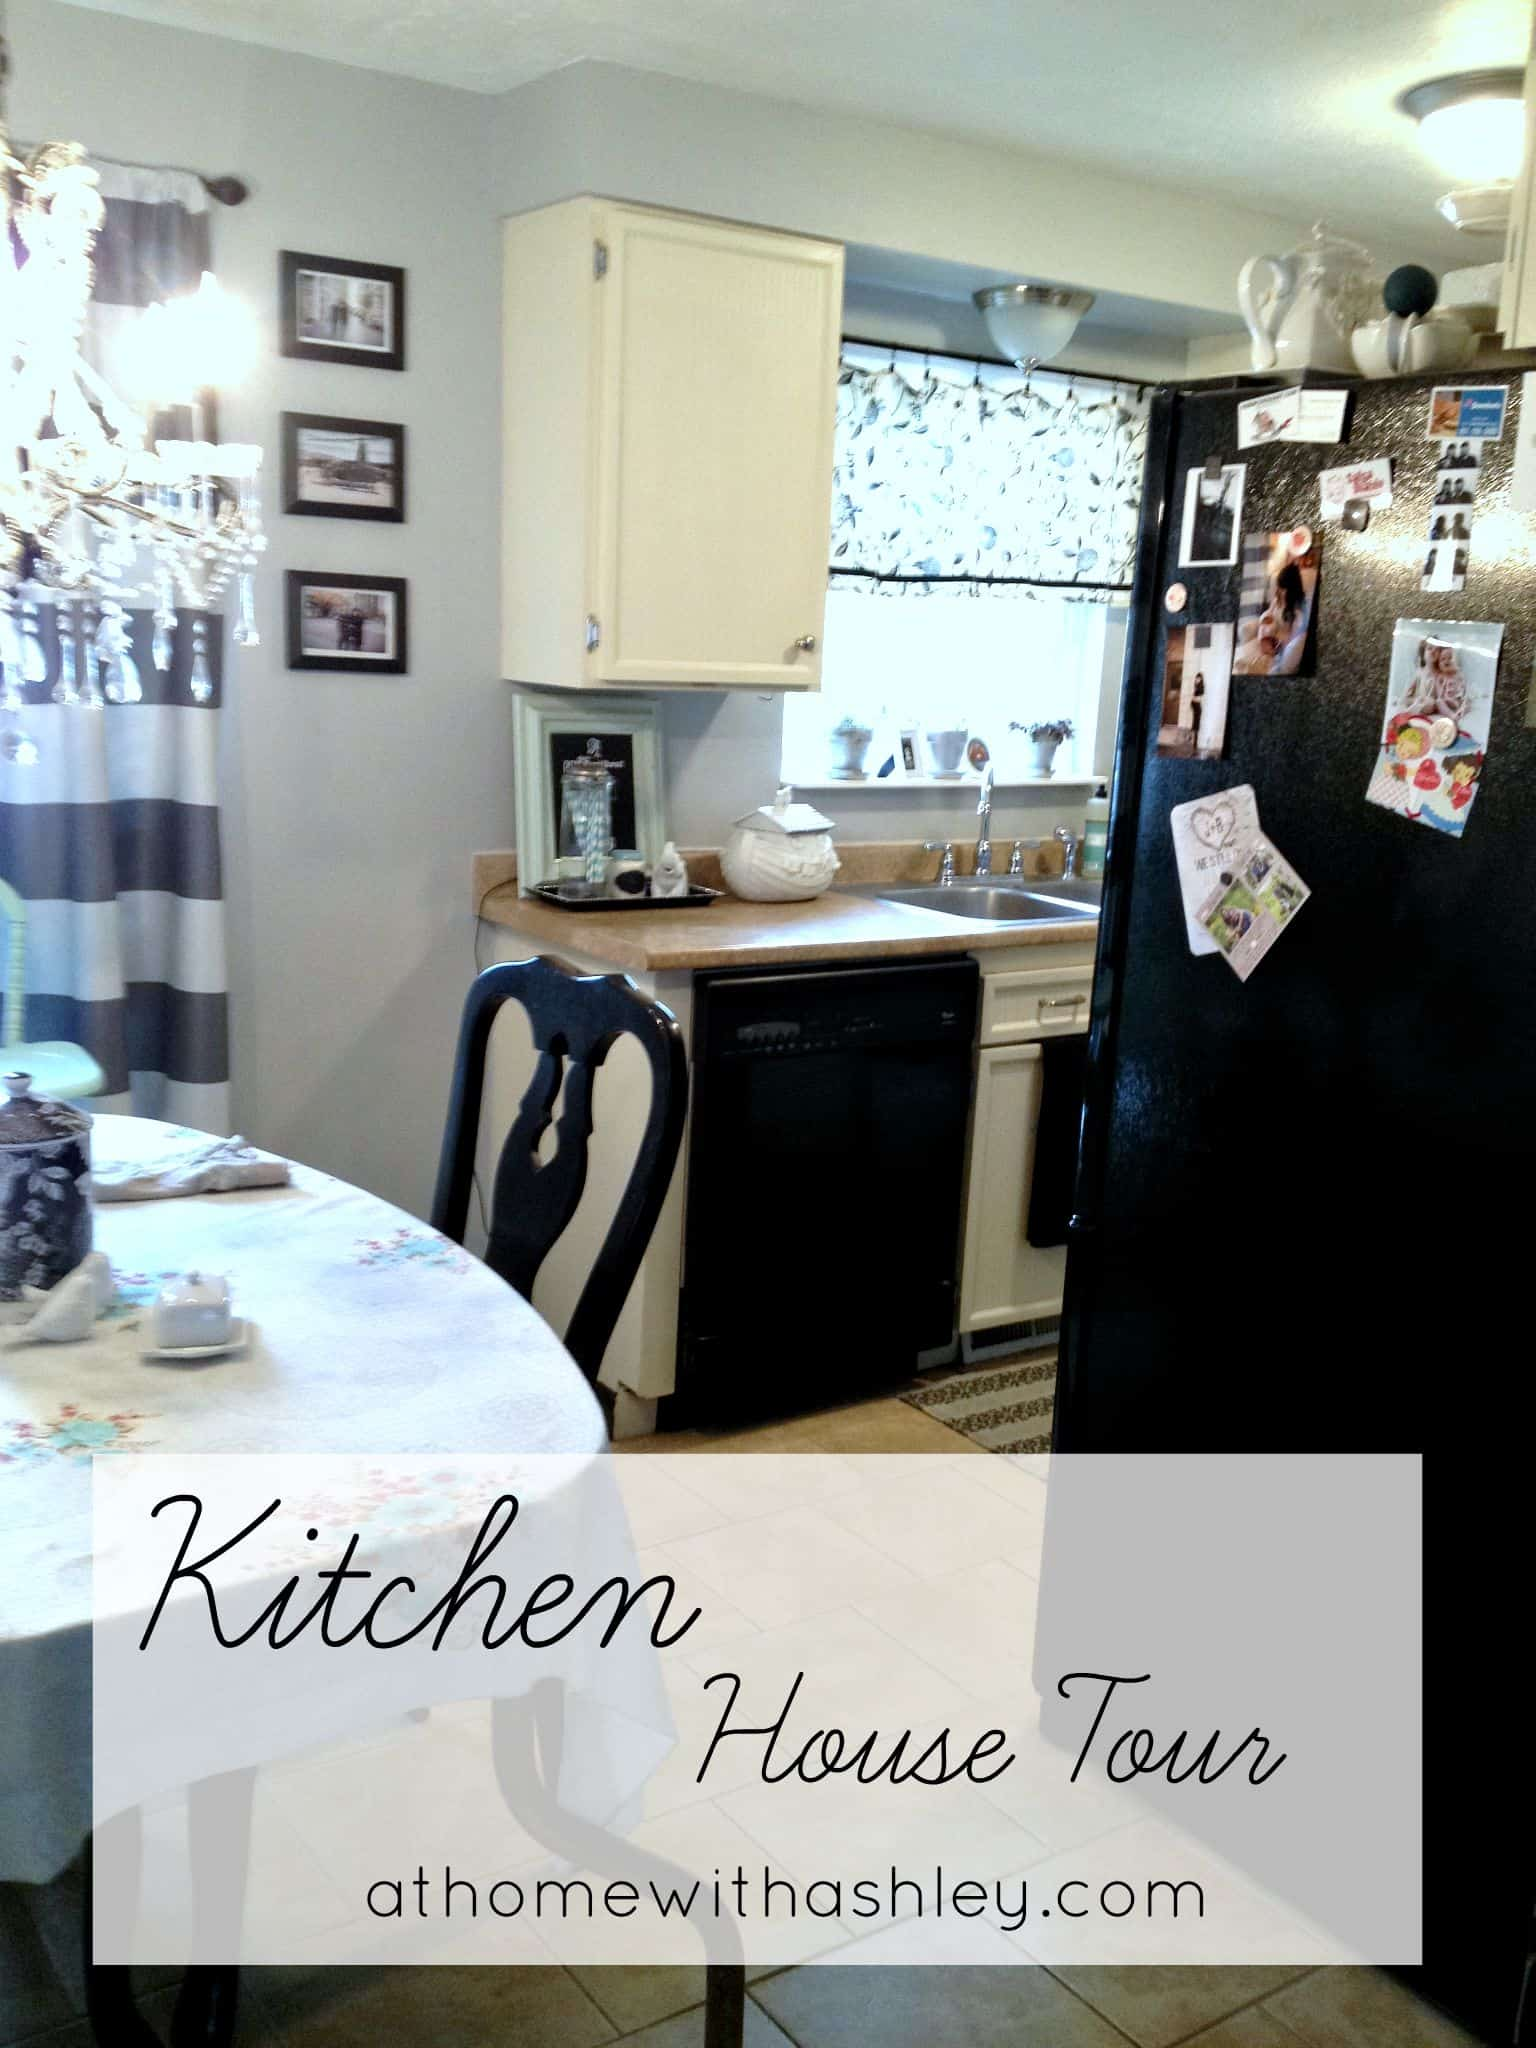 Kitchen- Home Tour